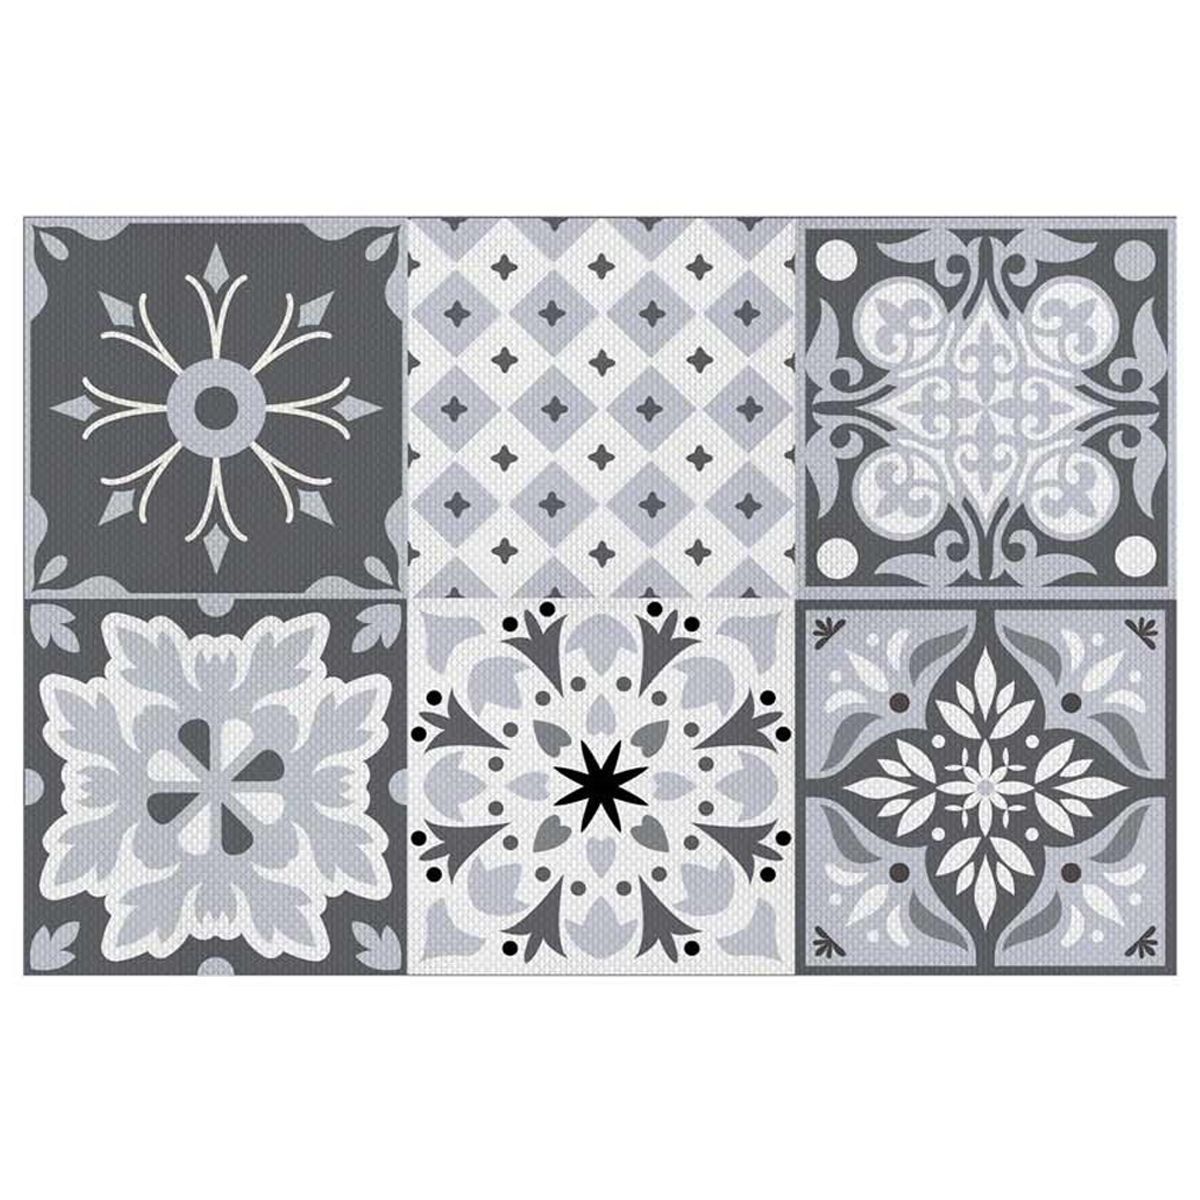 Set de table plastifié \'Boho\' gris (carreaux) - 43x28 cm - [Q5594]